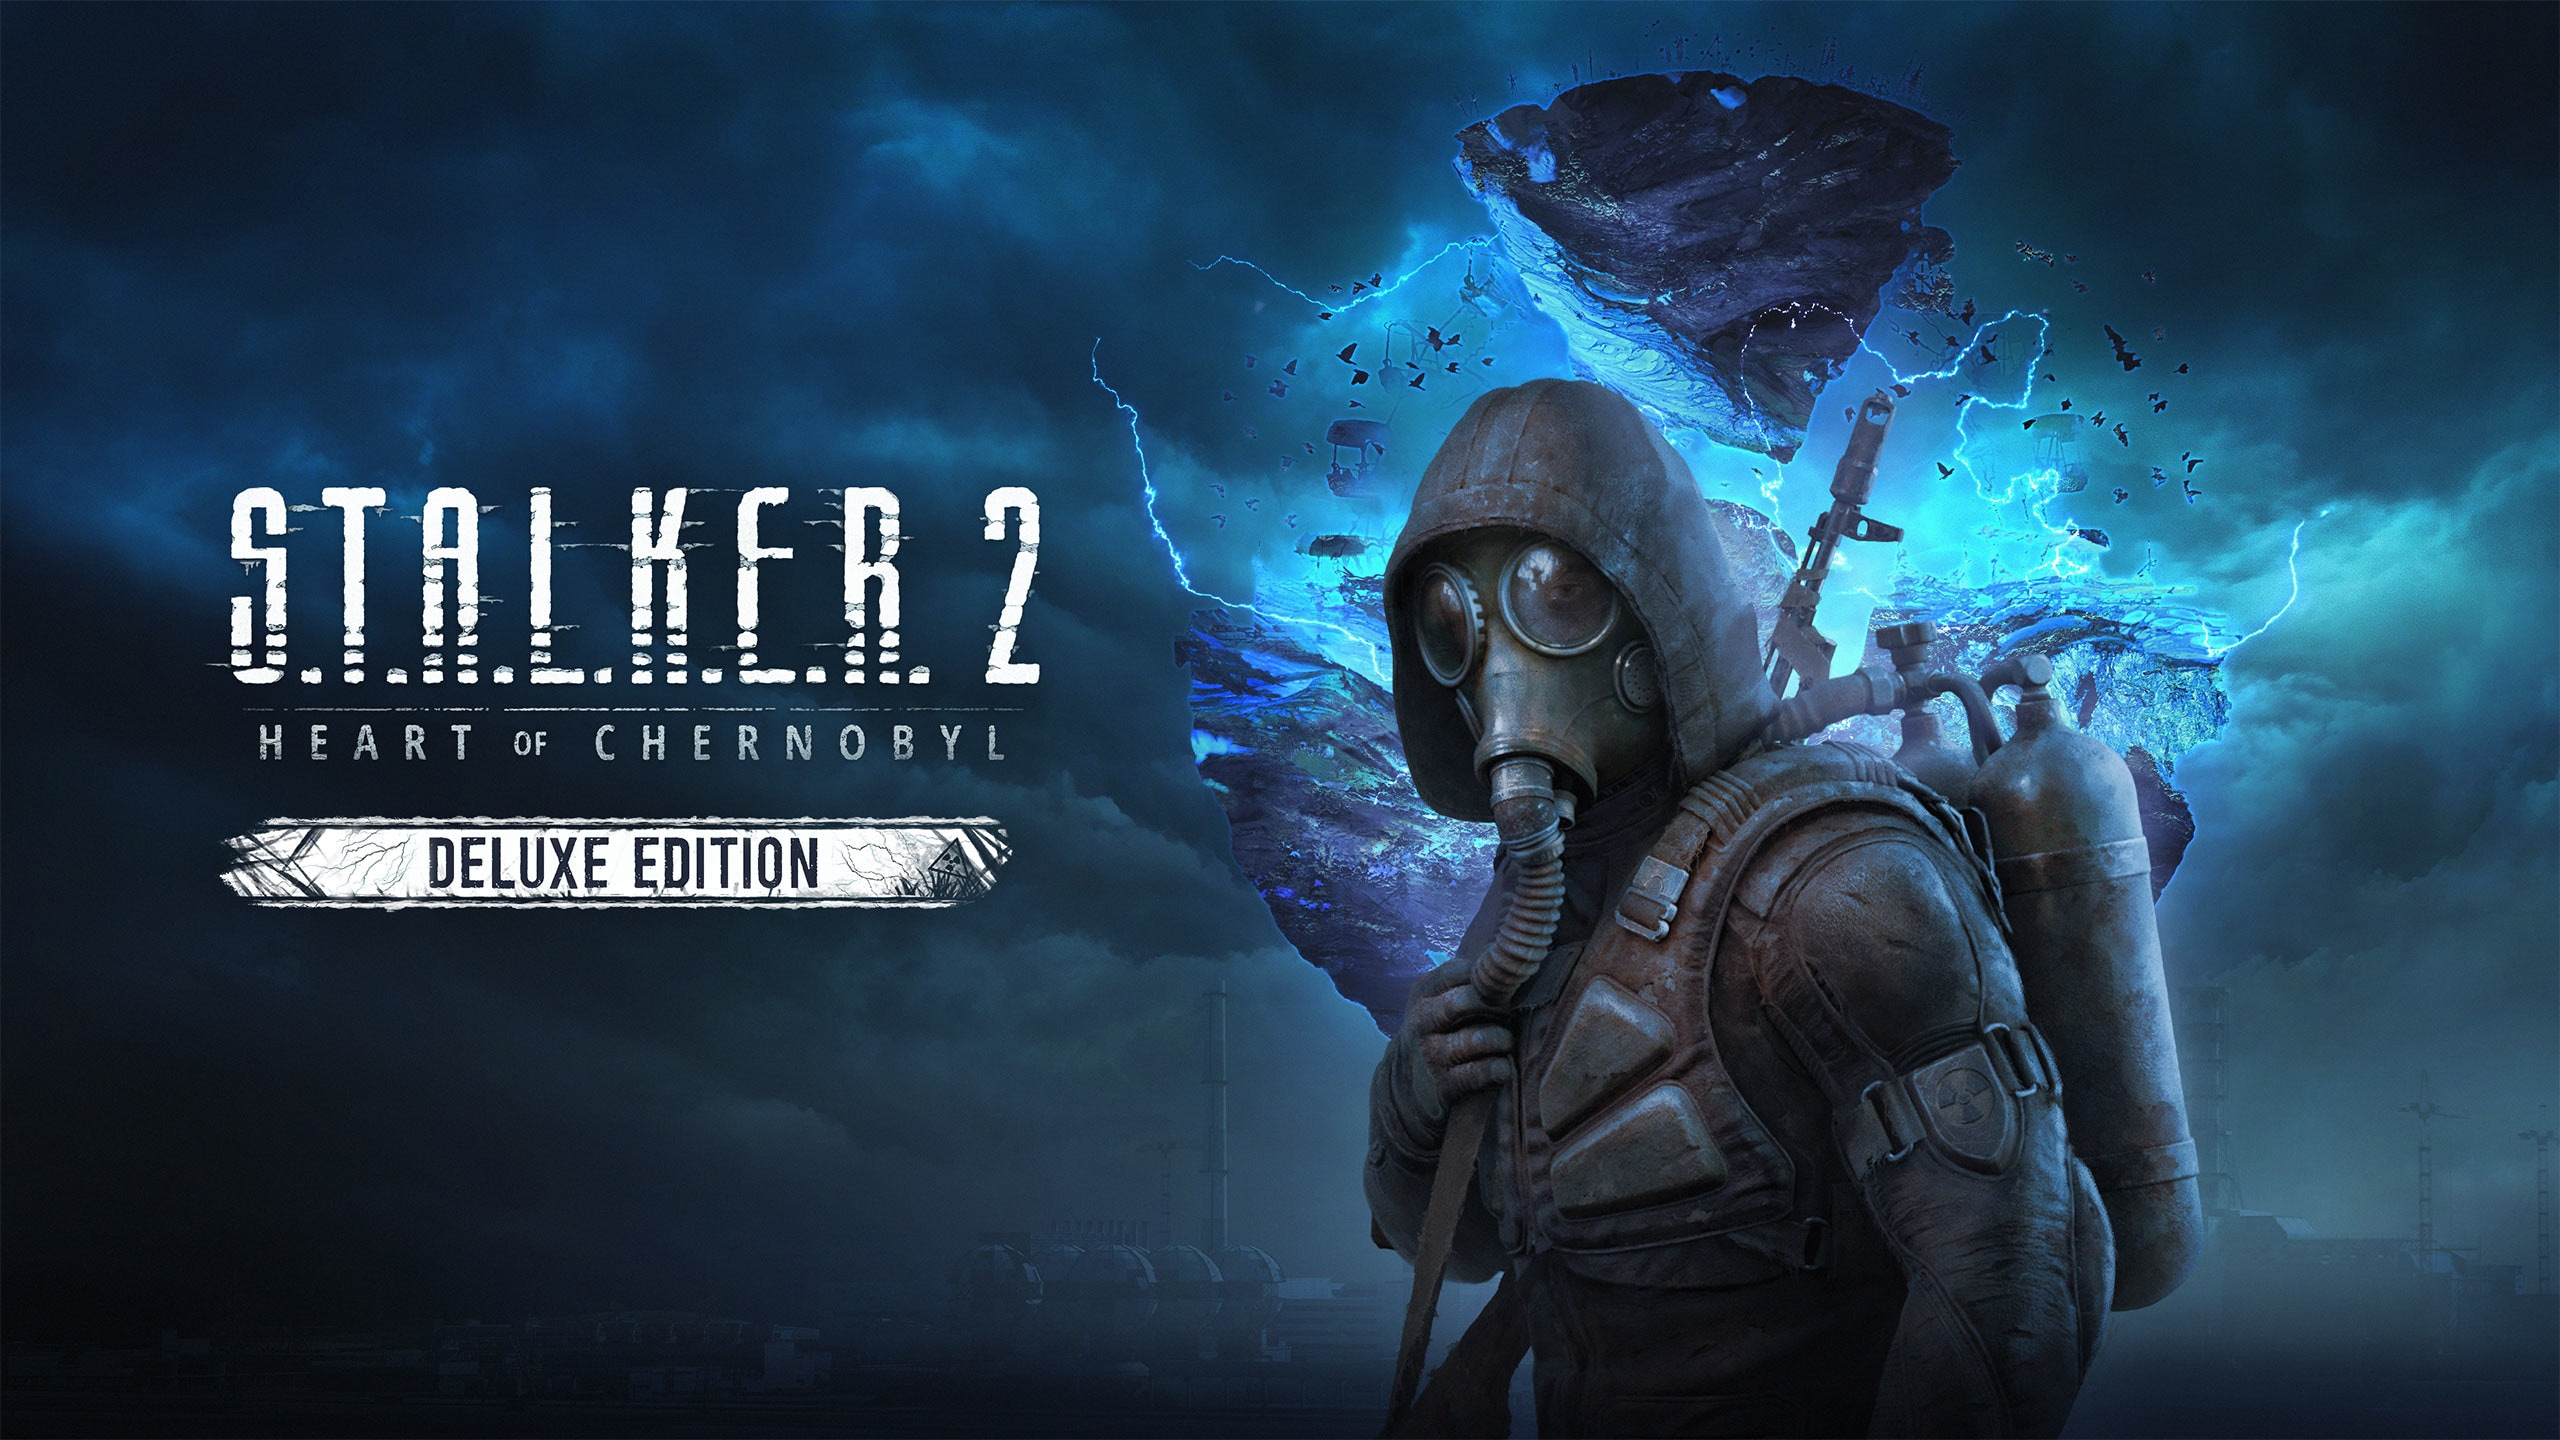 S.T.A.L.K.E.R. 2: Heart of Chernobyl | Deluxe Edition (PC) - Steam Gift - GLOBAL - 1